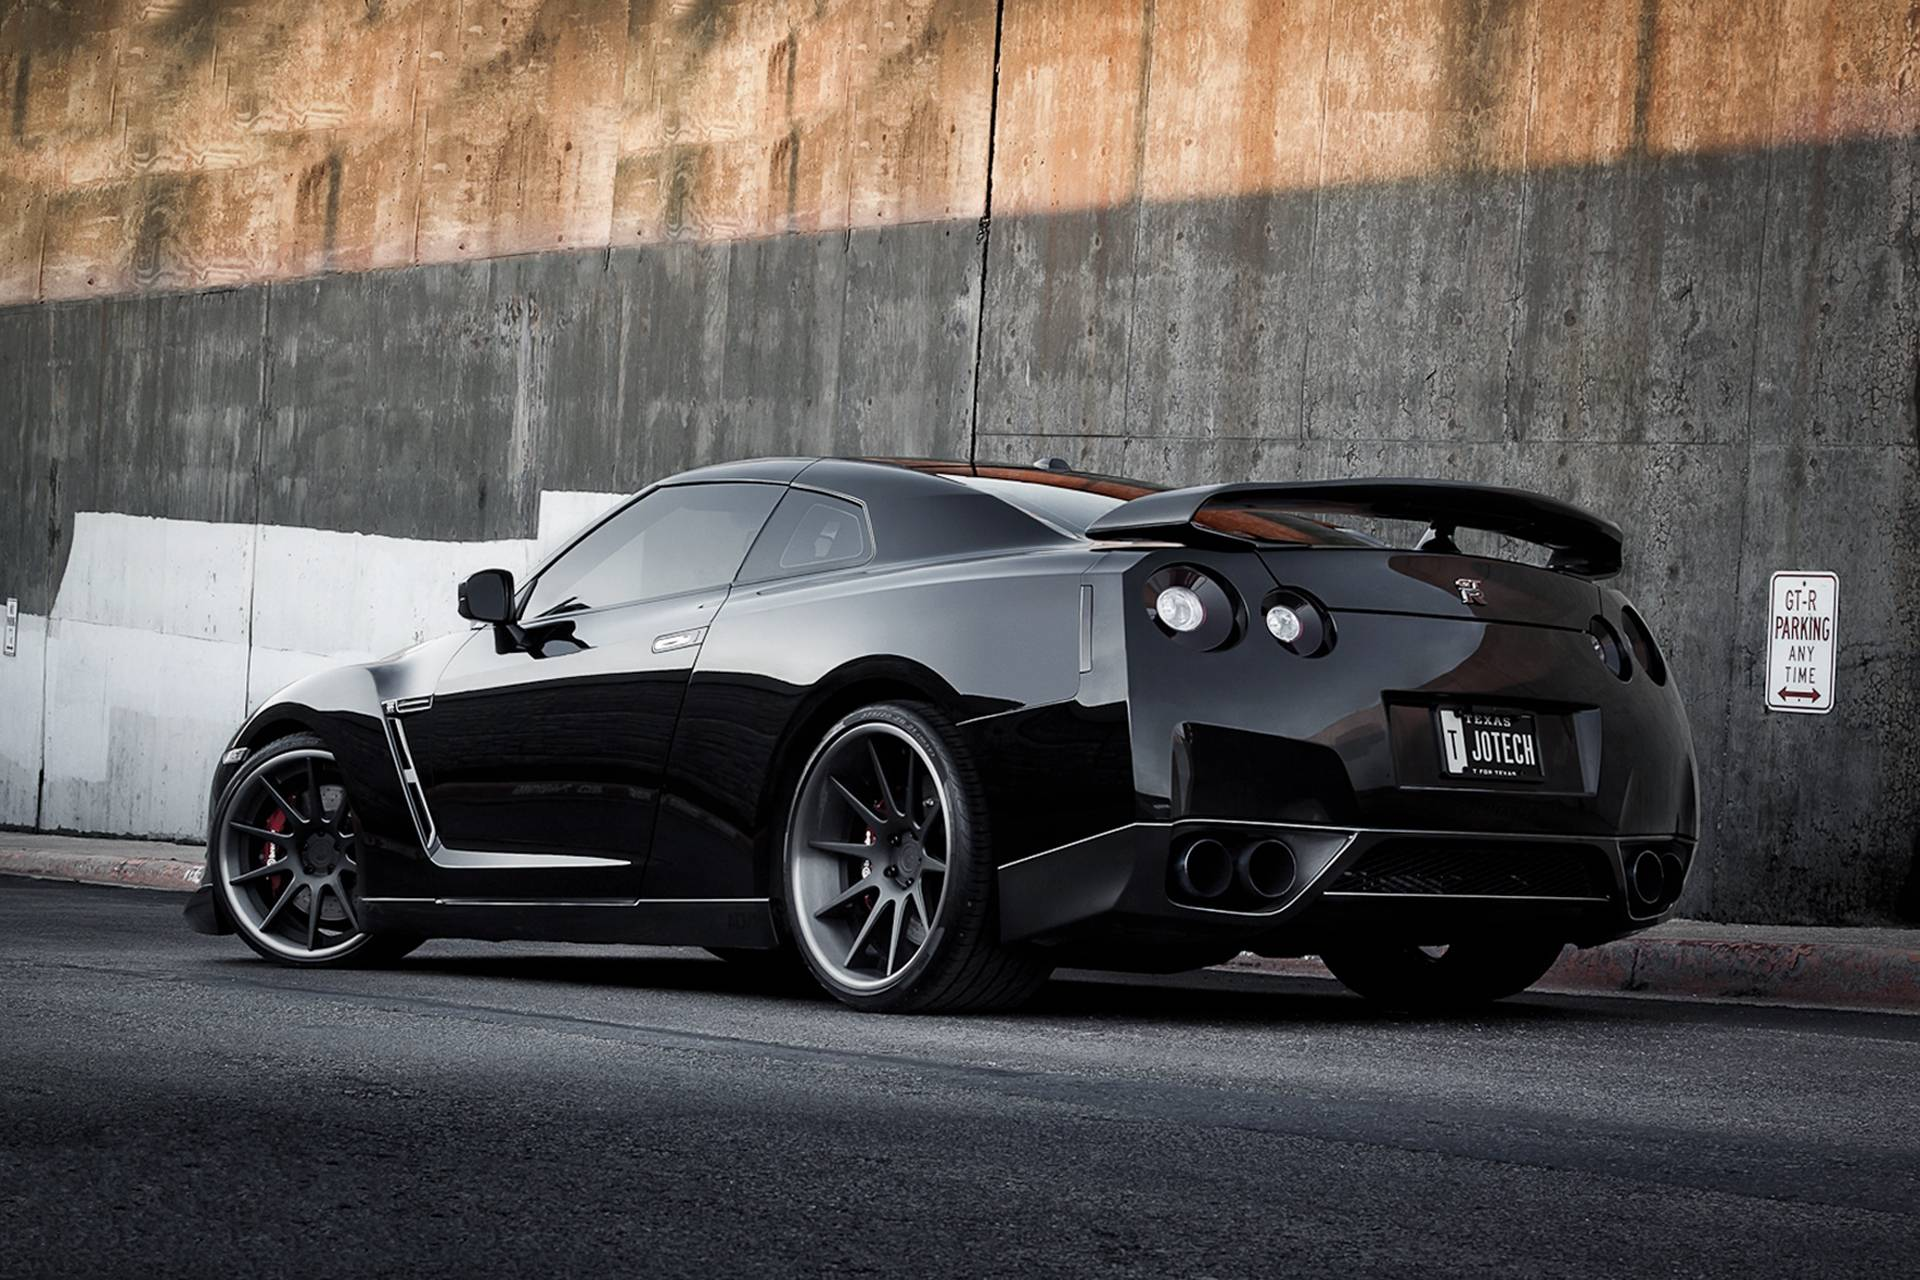 Nissan GTR Wallpaper Background HD #1128 Wallpaper | Cool ...